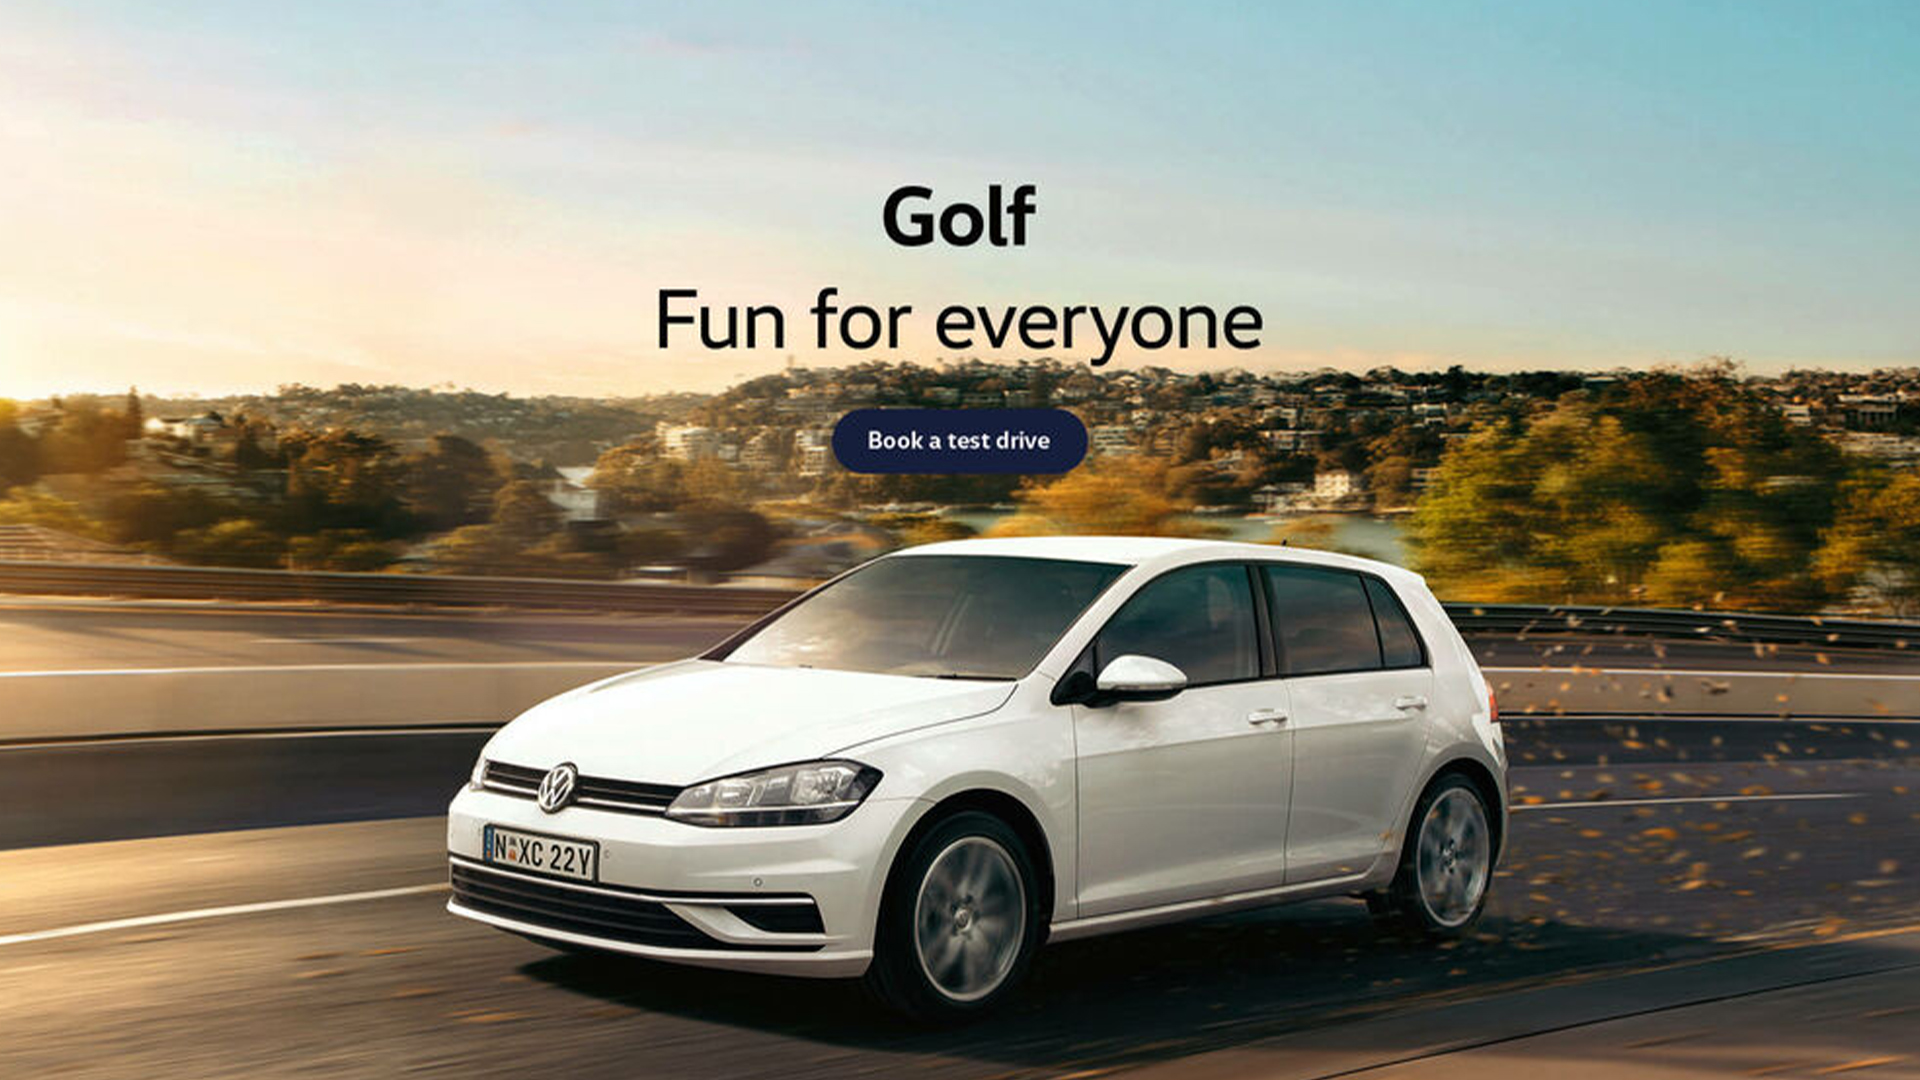 Volkswagen Golf. Fun for everyone. Test drive today at Woodleys Volkswagen, Tamworth